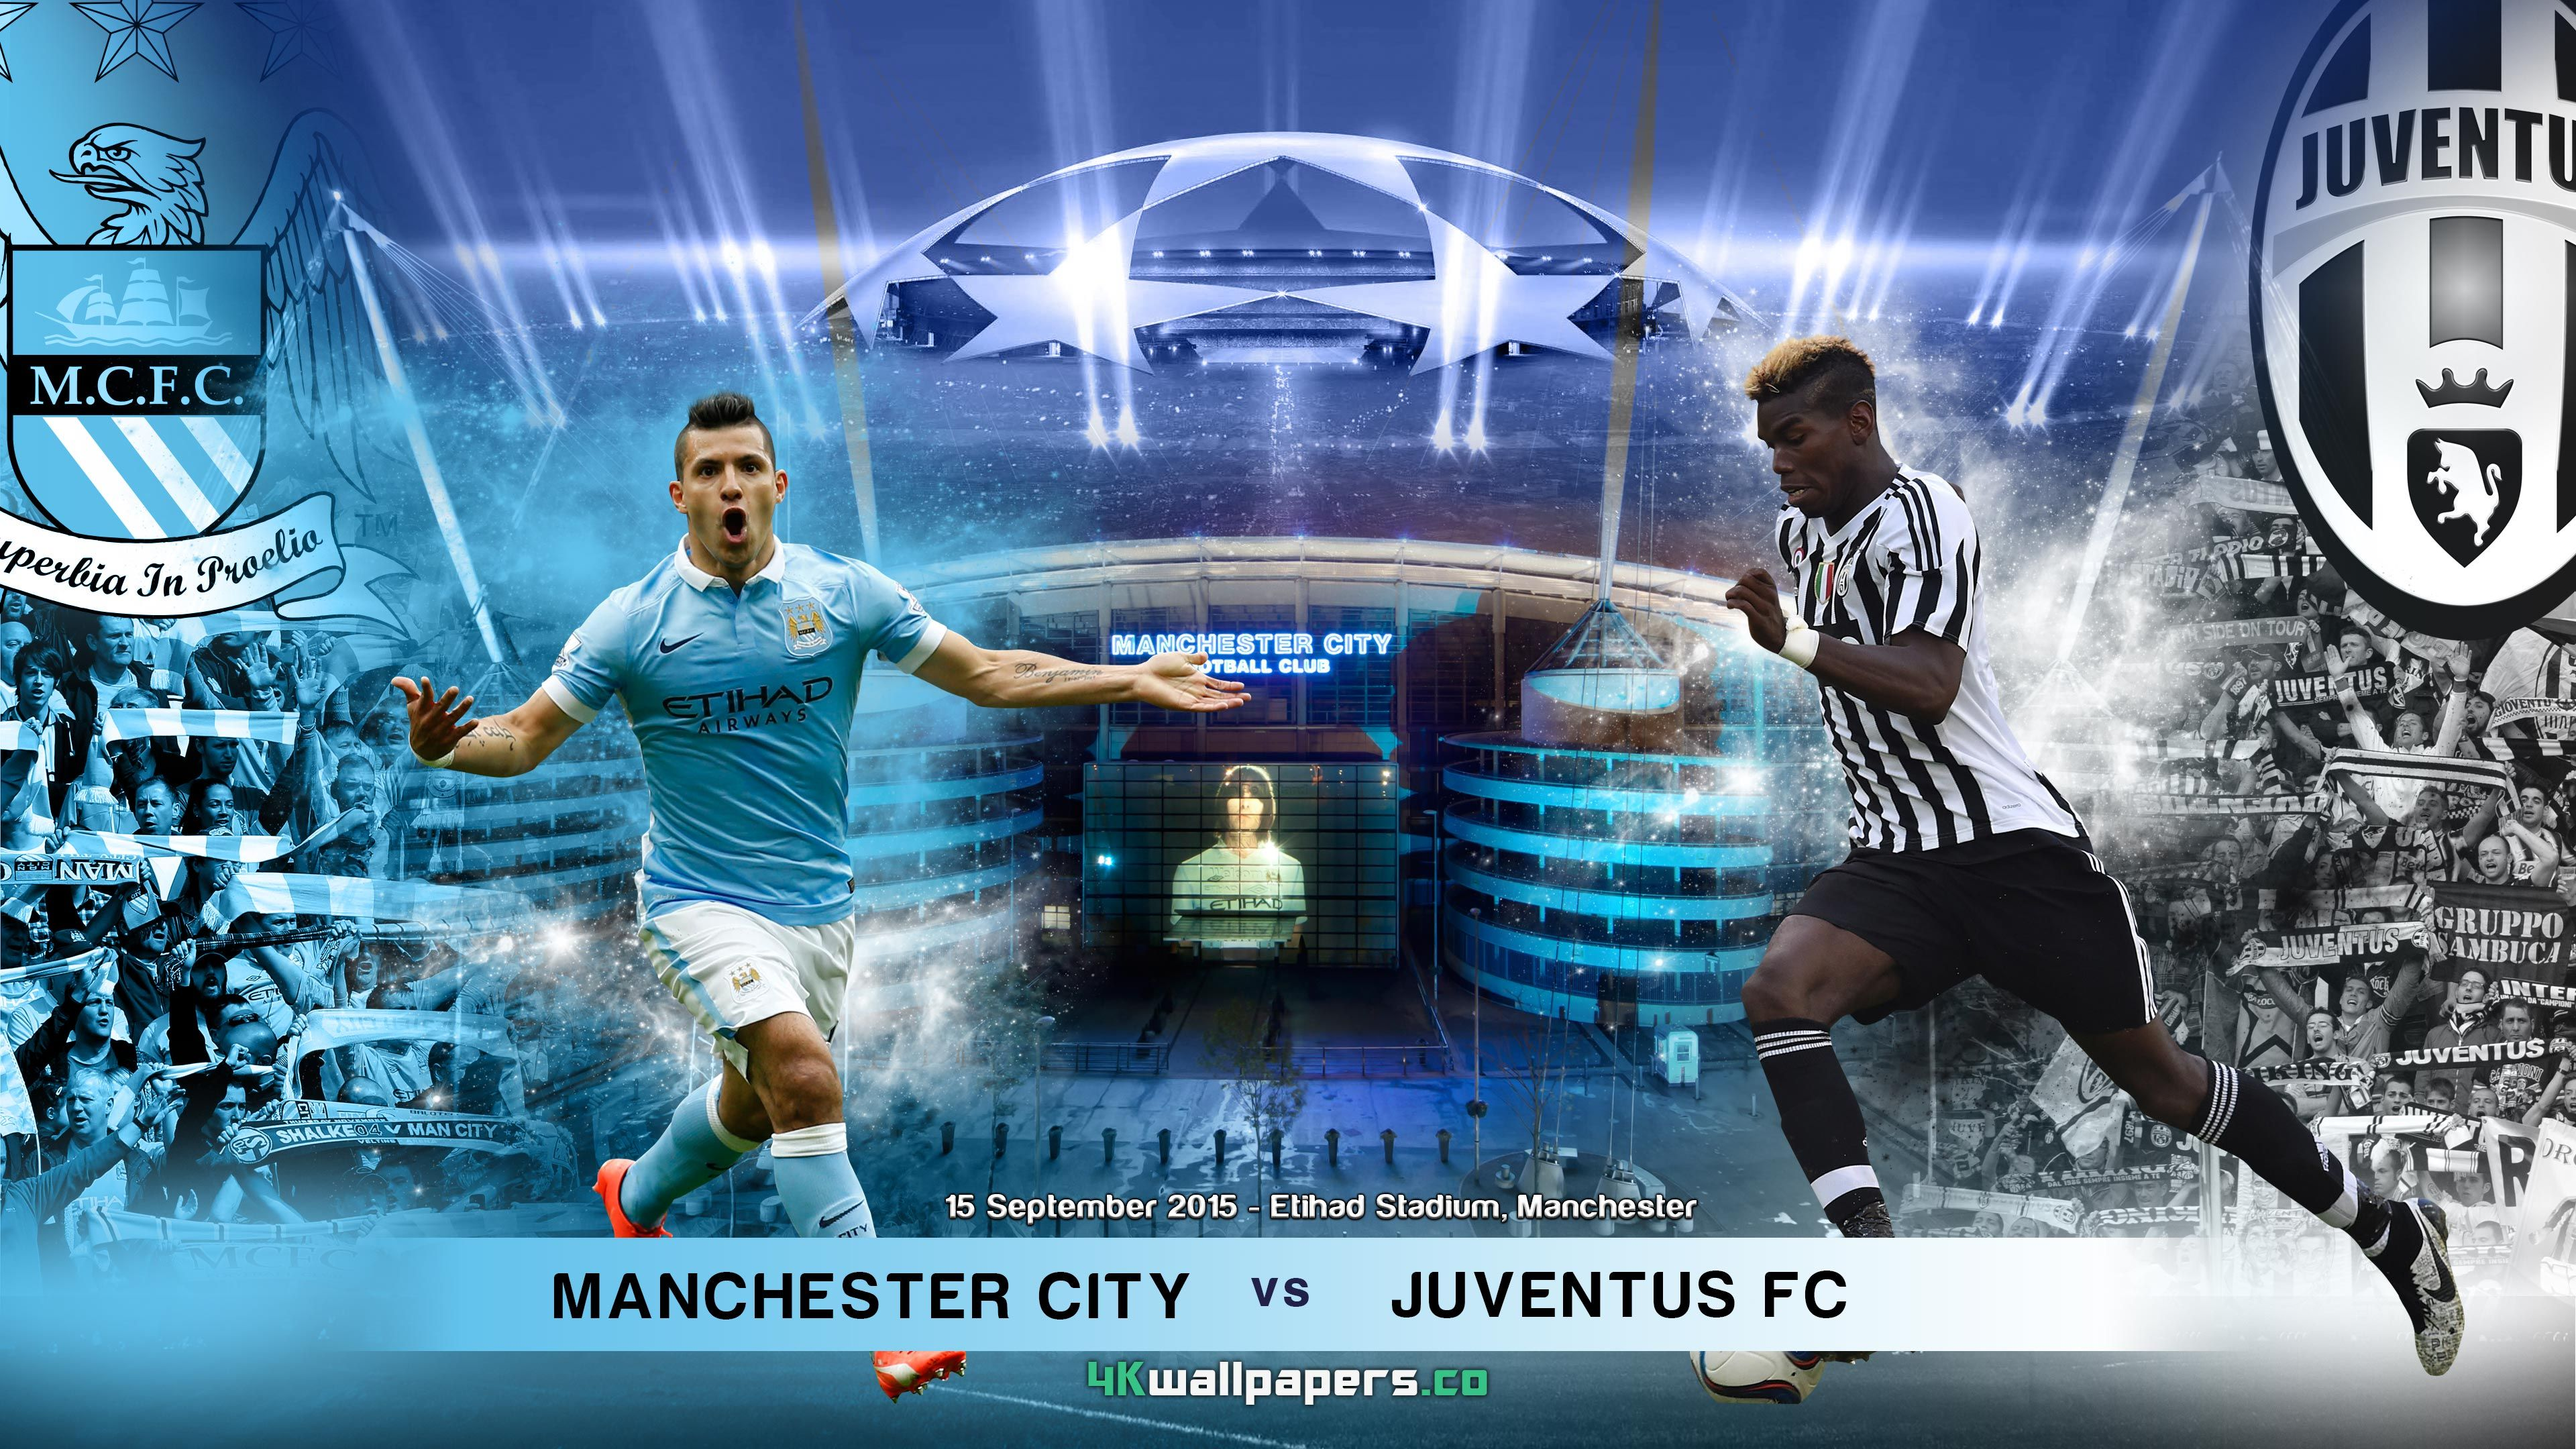 Manchester-City-v-Juventus-FC-2015-16-UEFA-Champions-League-4K-Wallpapers